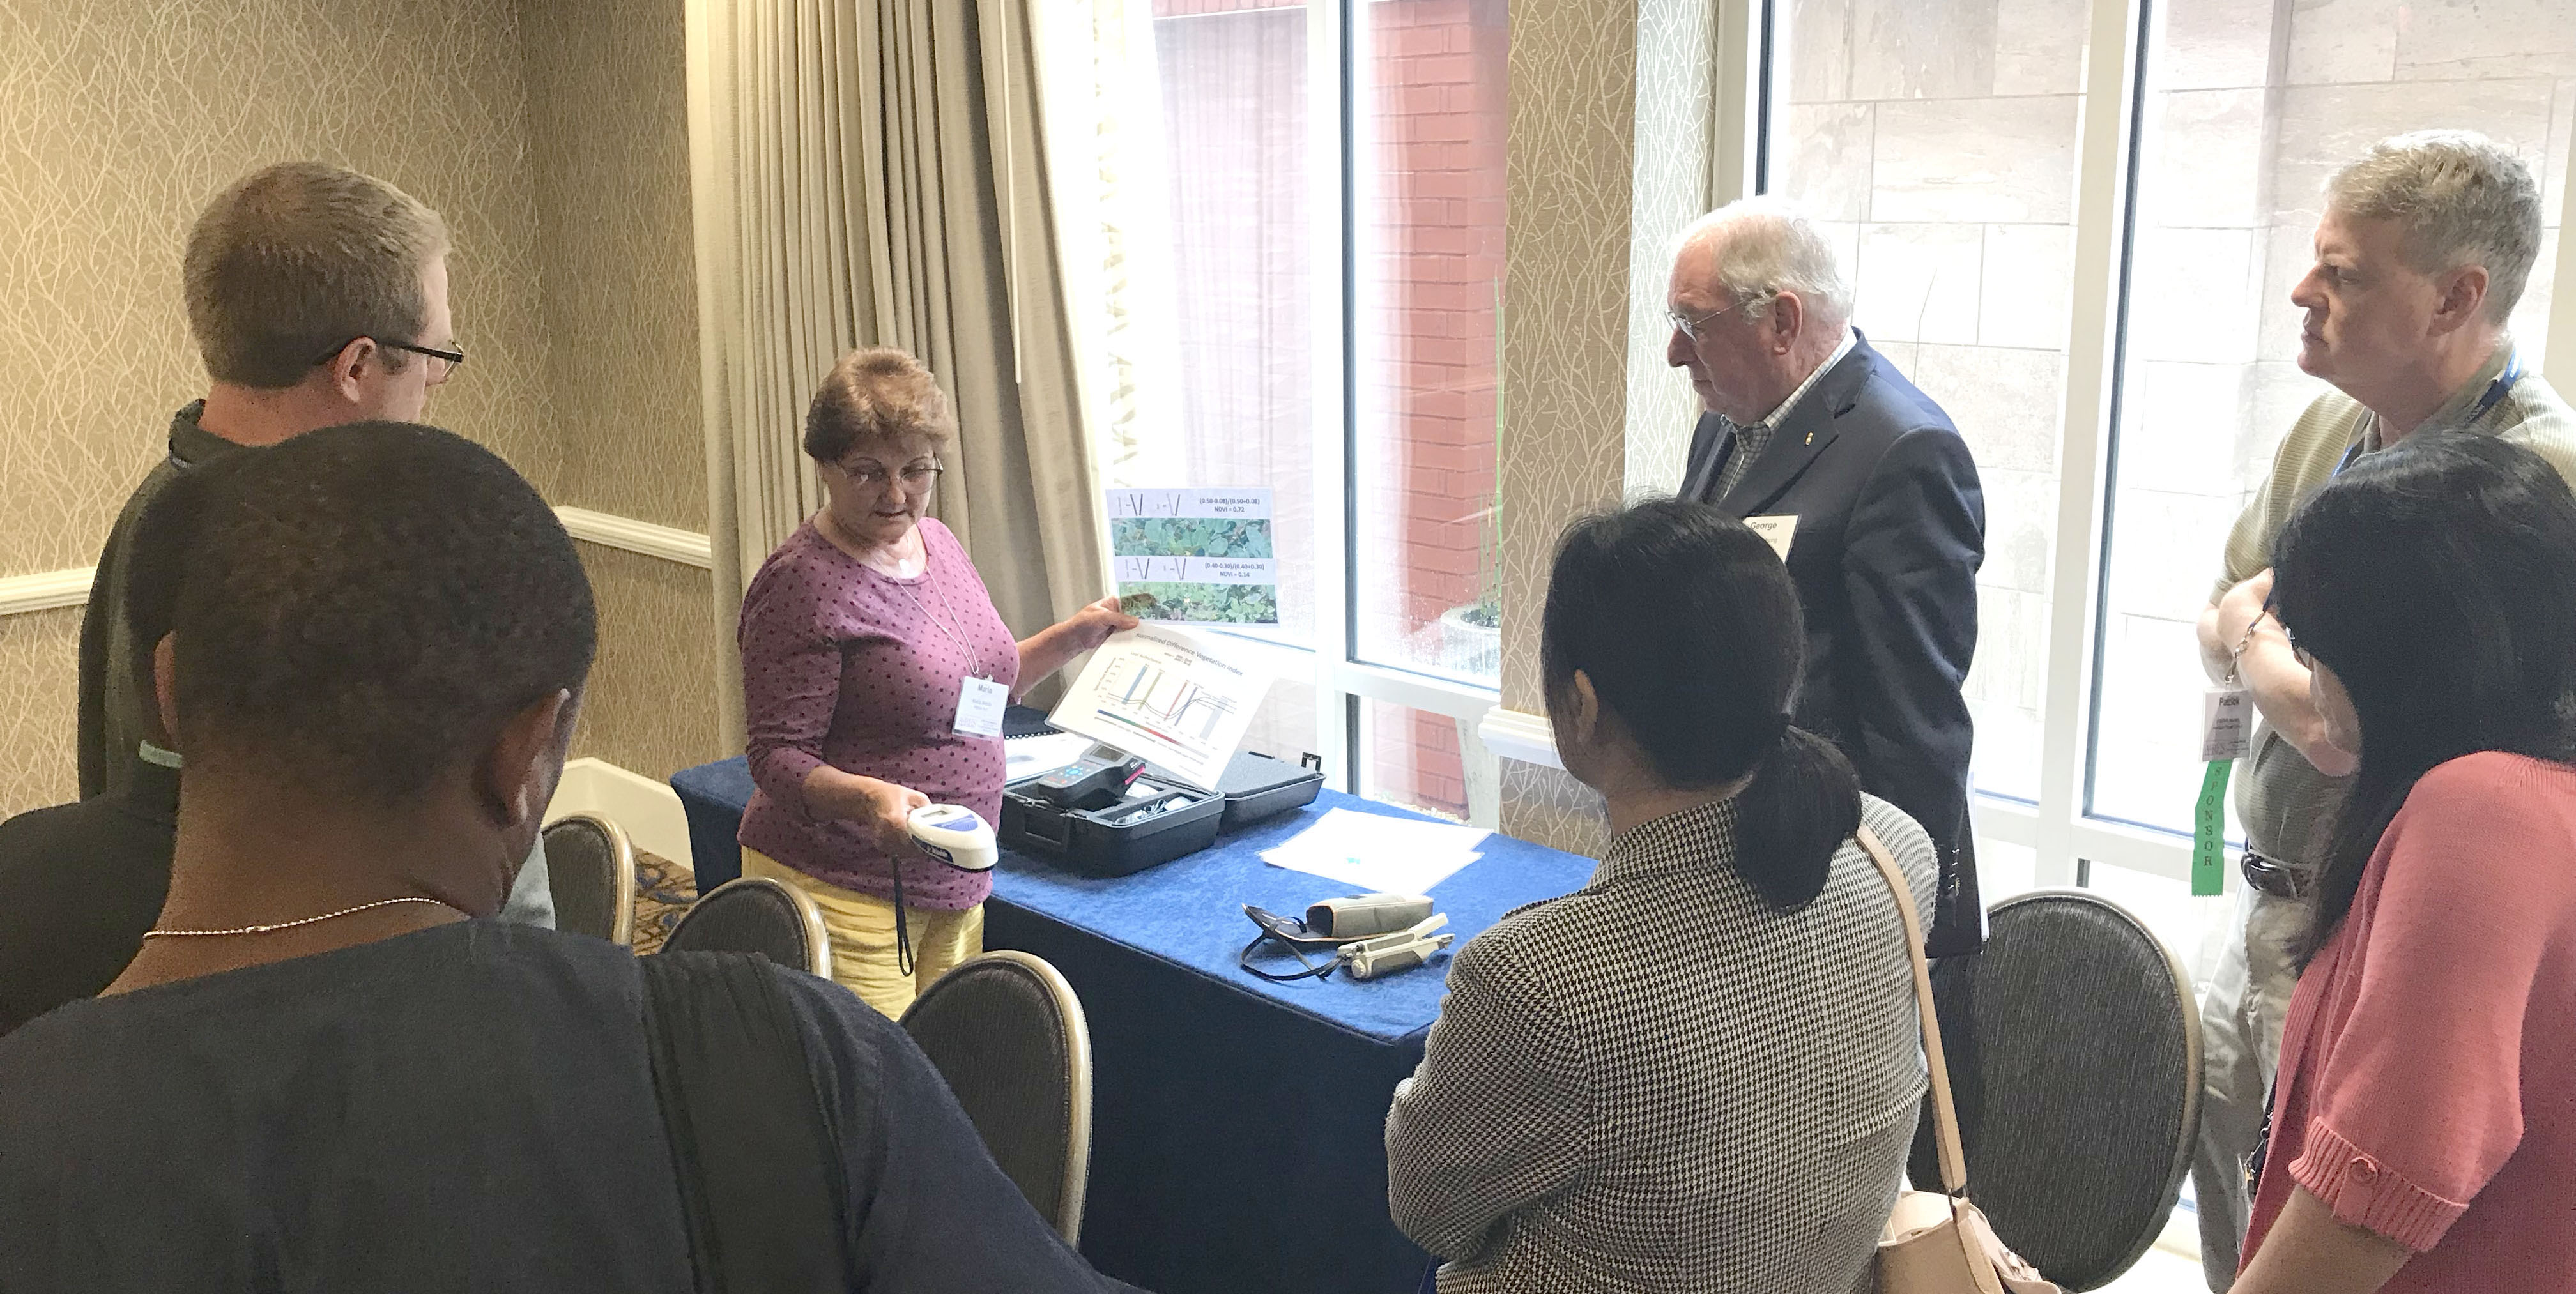 Virginia Tech plant pathologist and Peanut Innovation Lab scientist Maria Balota demonstrates some of the sensors she uses in the high throughput phenotyping project to attendees at the 51st annual American Peanut Research and Education Society meeting in Auburn, Ala. which was held July 9-11, 2019.